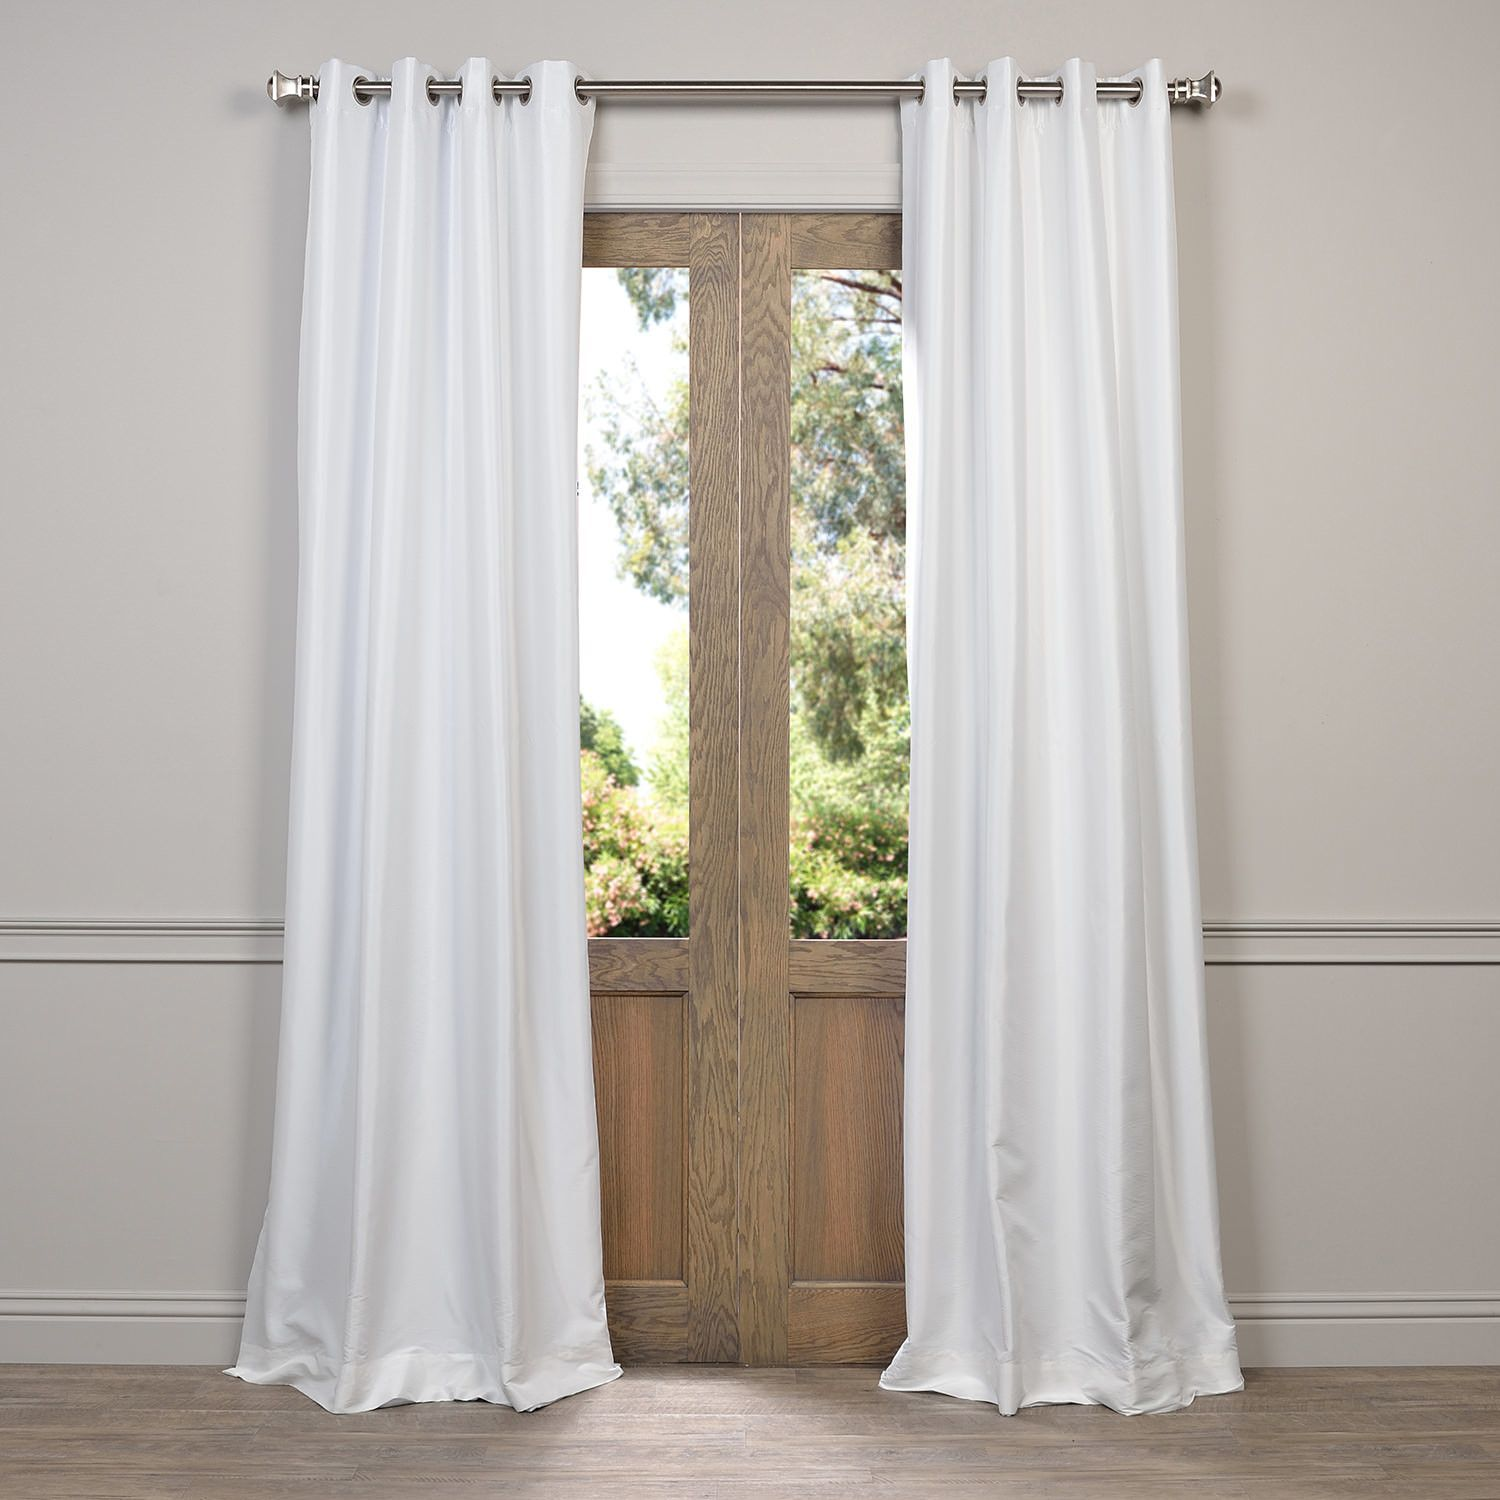 for flared pict trend furniture drapes bath beyond the unique of tfile best style ideas blue u faux white curtains and marquee stunning curtain bed pics silk